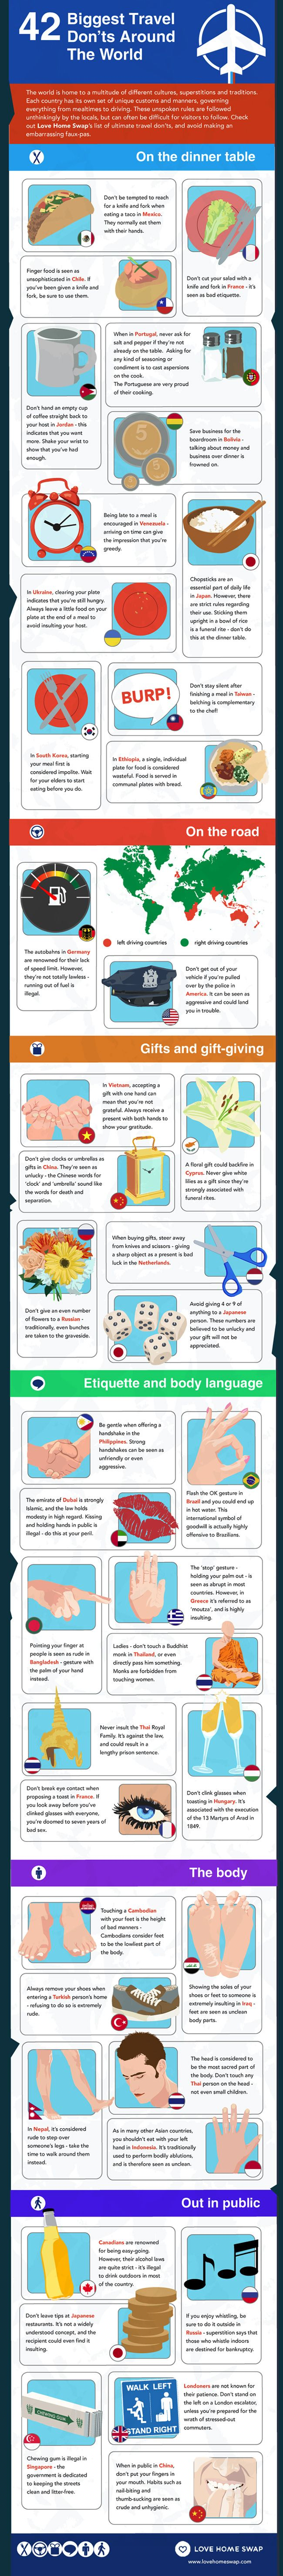 42 Biggest Travel Don'ts Around The World #infographic #traveltips